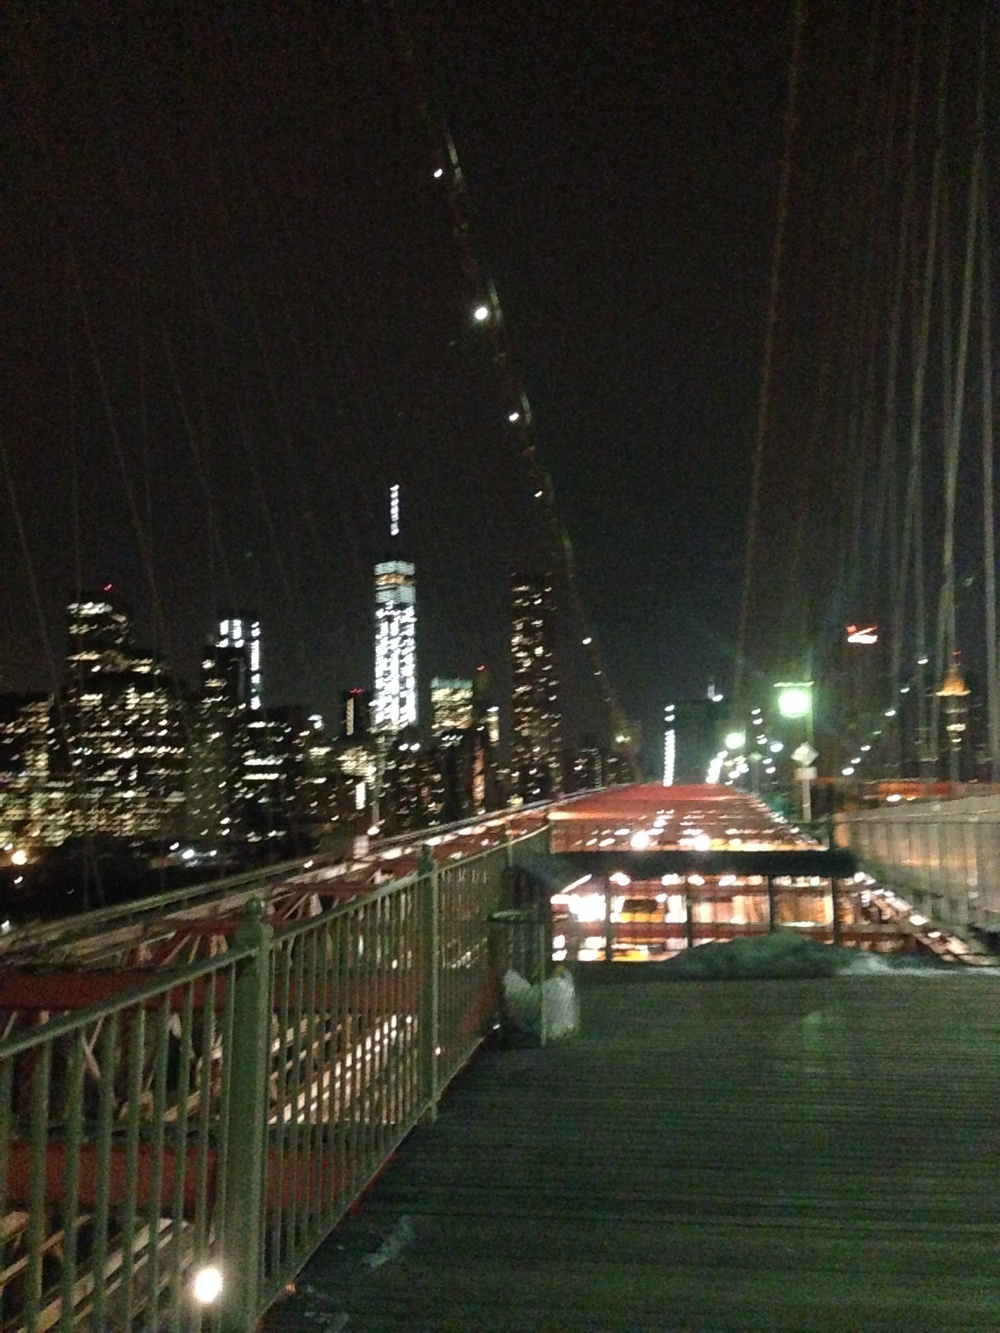 The view from Brooklyn Bridge.